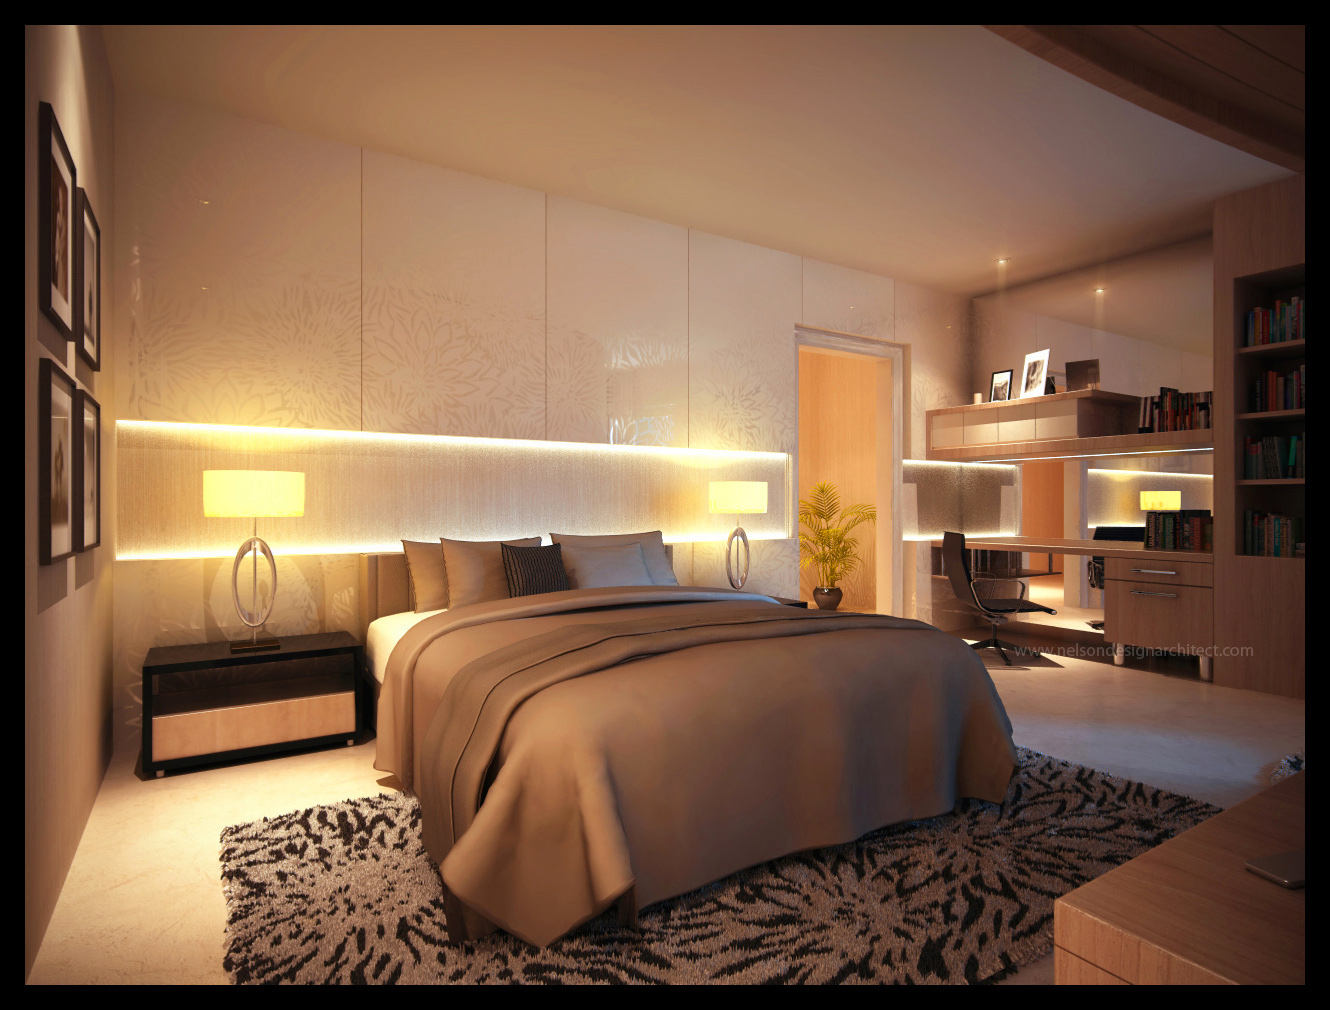 See more ideas about aesthetic bedroom, modern family house, tiny house layout. 25 Best Bedroom Designs Ideas – The WoW Style